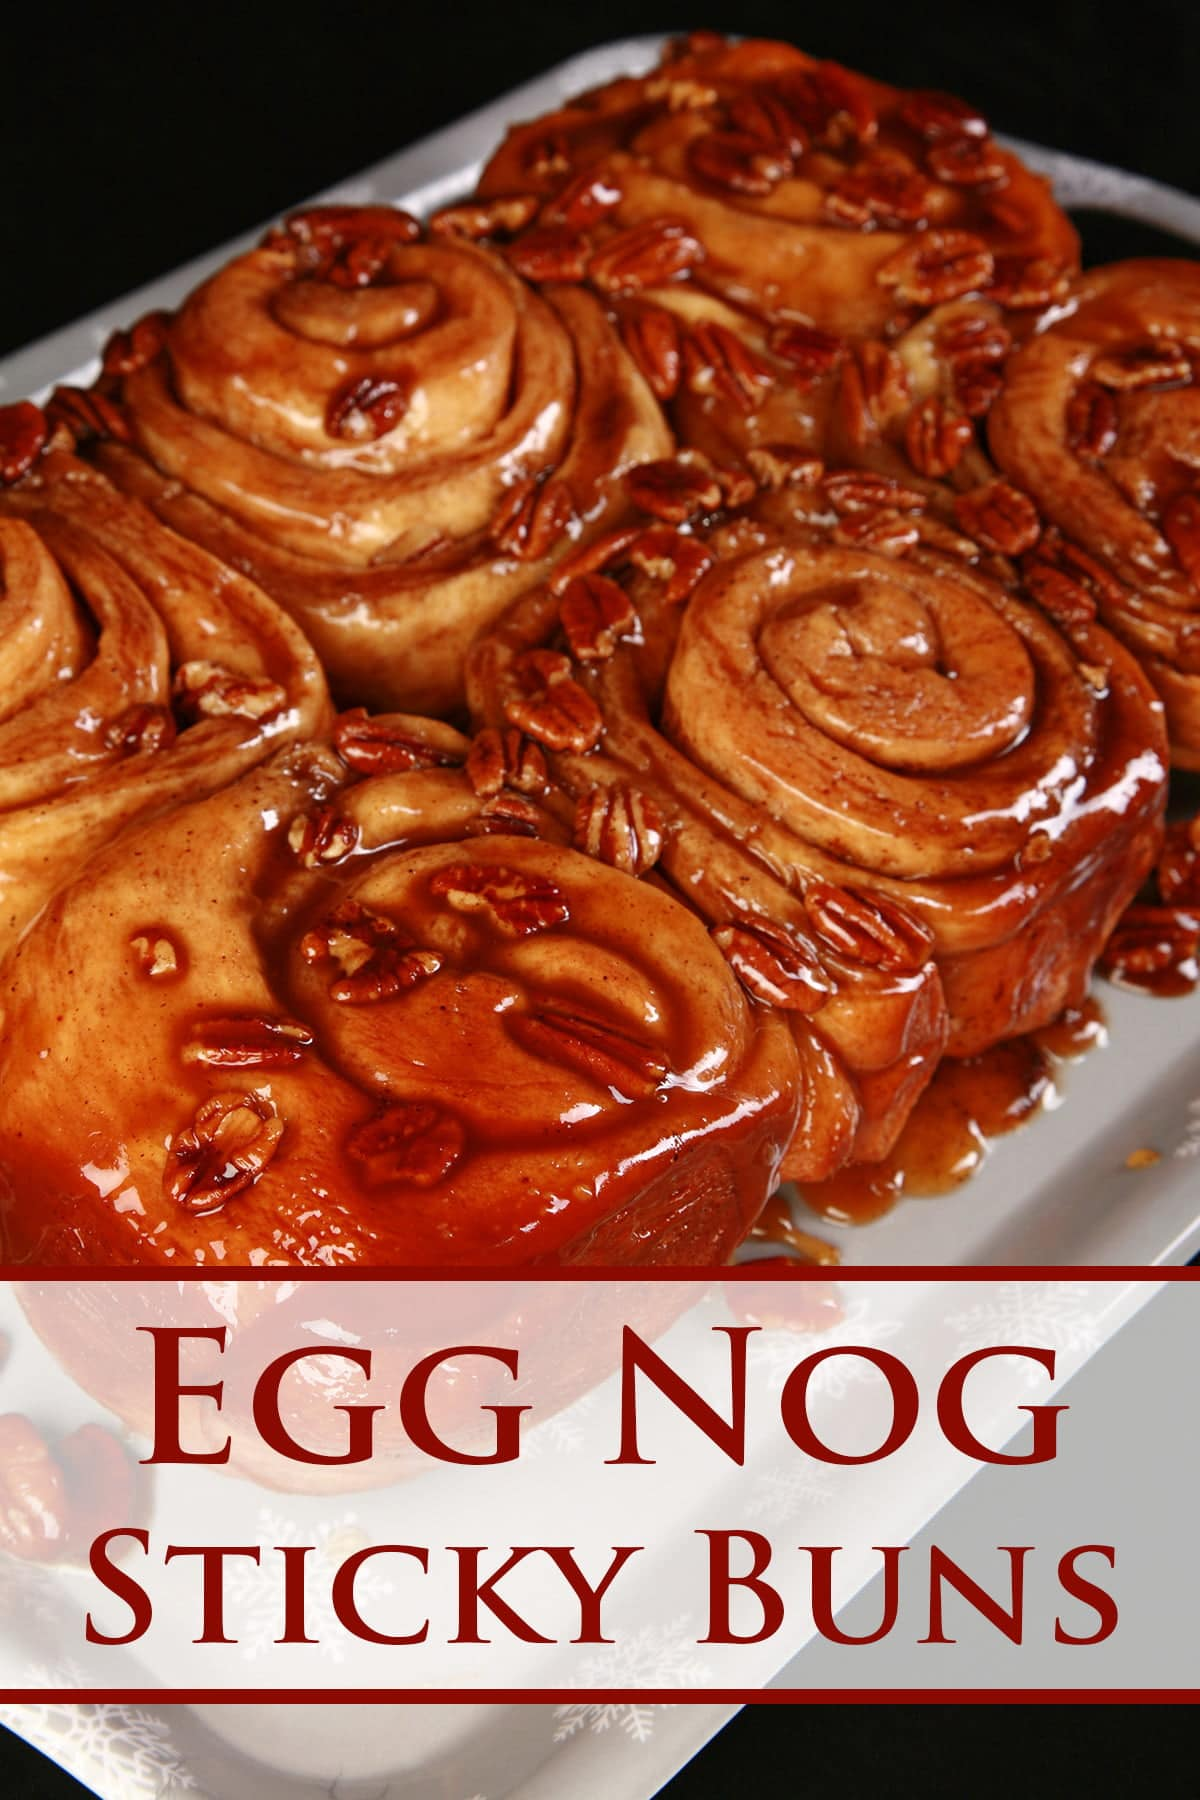 A close up view of a slab of 6 egg nog sticky buns. They are dripping with caramel and pecans.